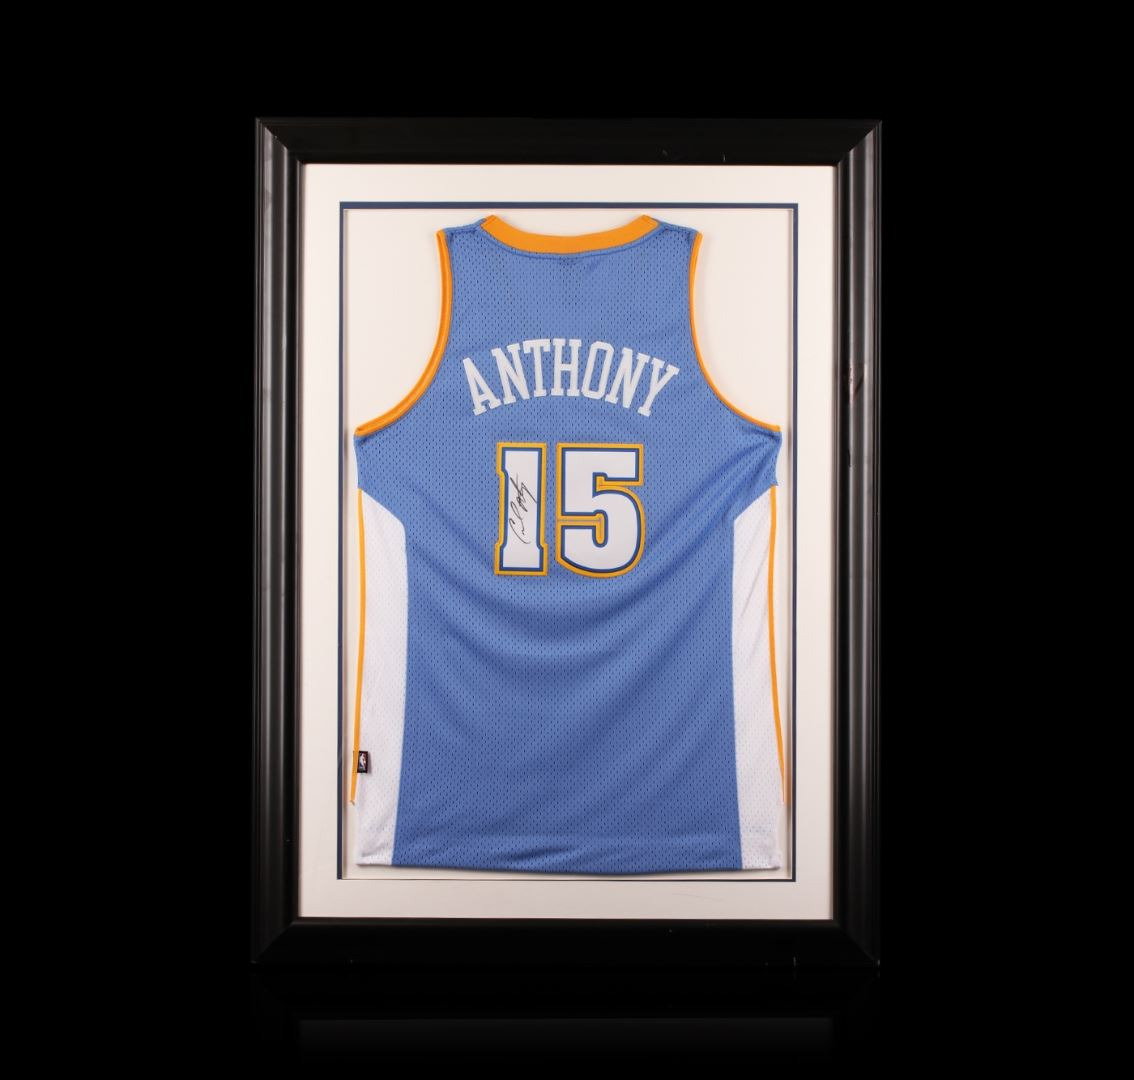 sale retailer acfab f3d57 Carmelo Anthony Framed Autographed Jersey